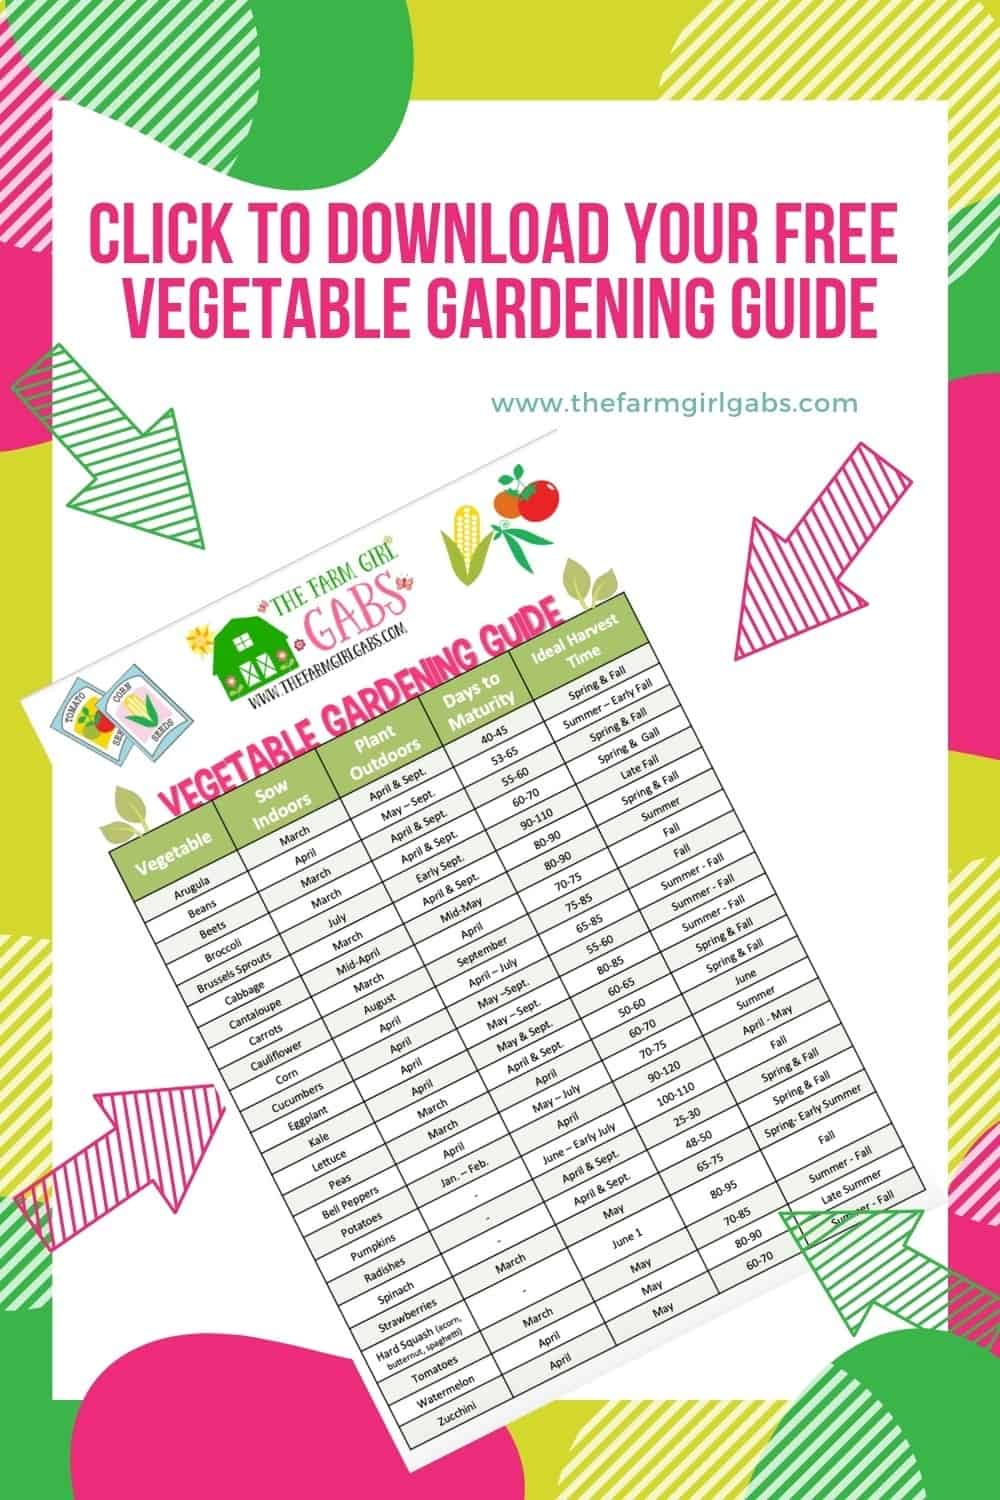 Get Your Garden Growing this spring. This Printable Vegetable Gardening Guide has an extensive list of vegetables to grow in your garden. #gardeningtips #gardeningideas #vegetablegarden